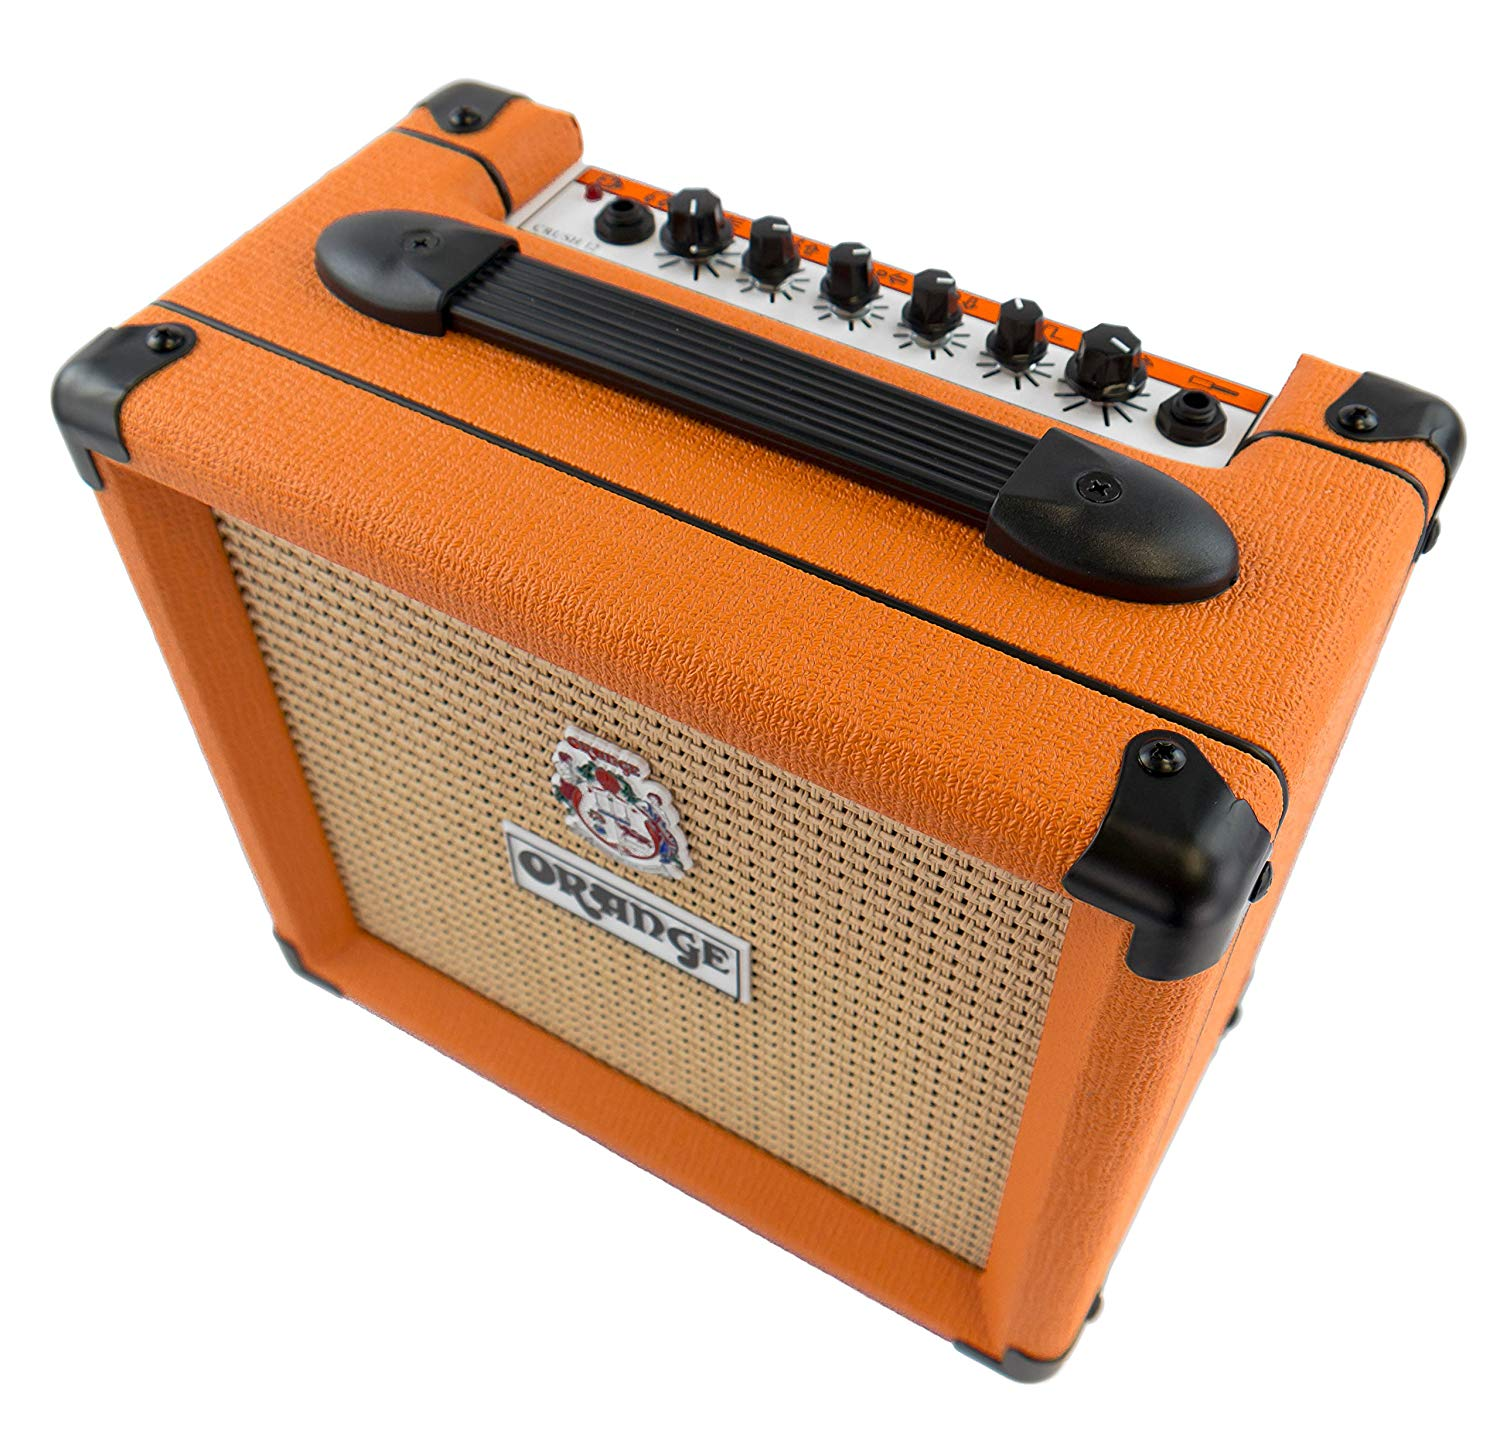 Top View if The 12 Watt ORANGE Crush Amplifier